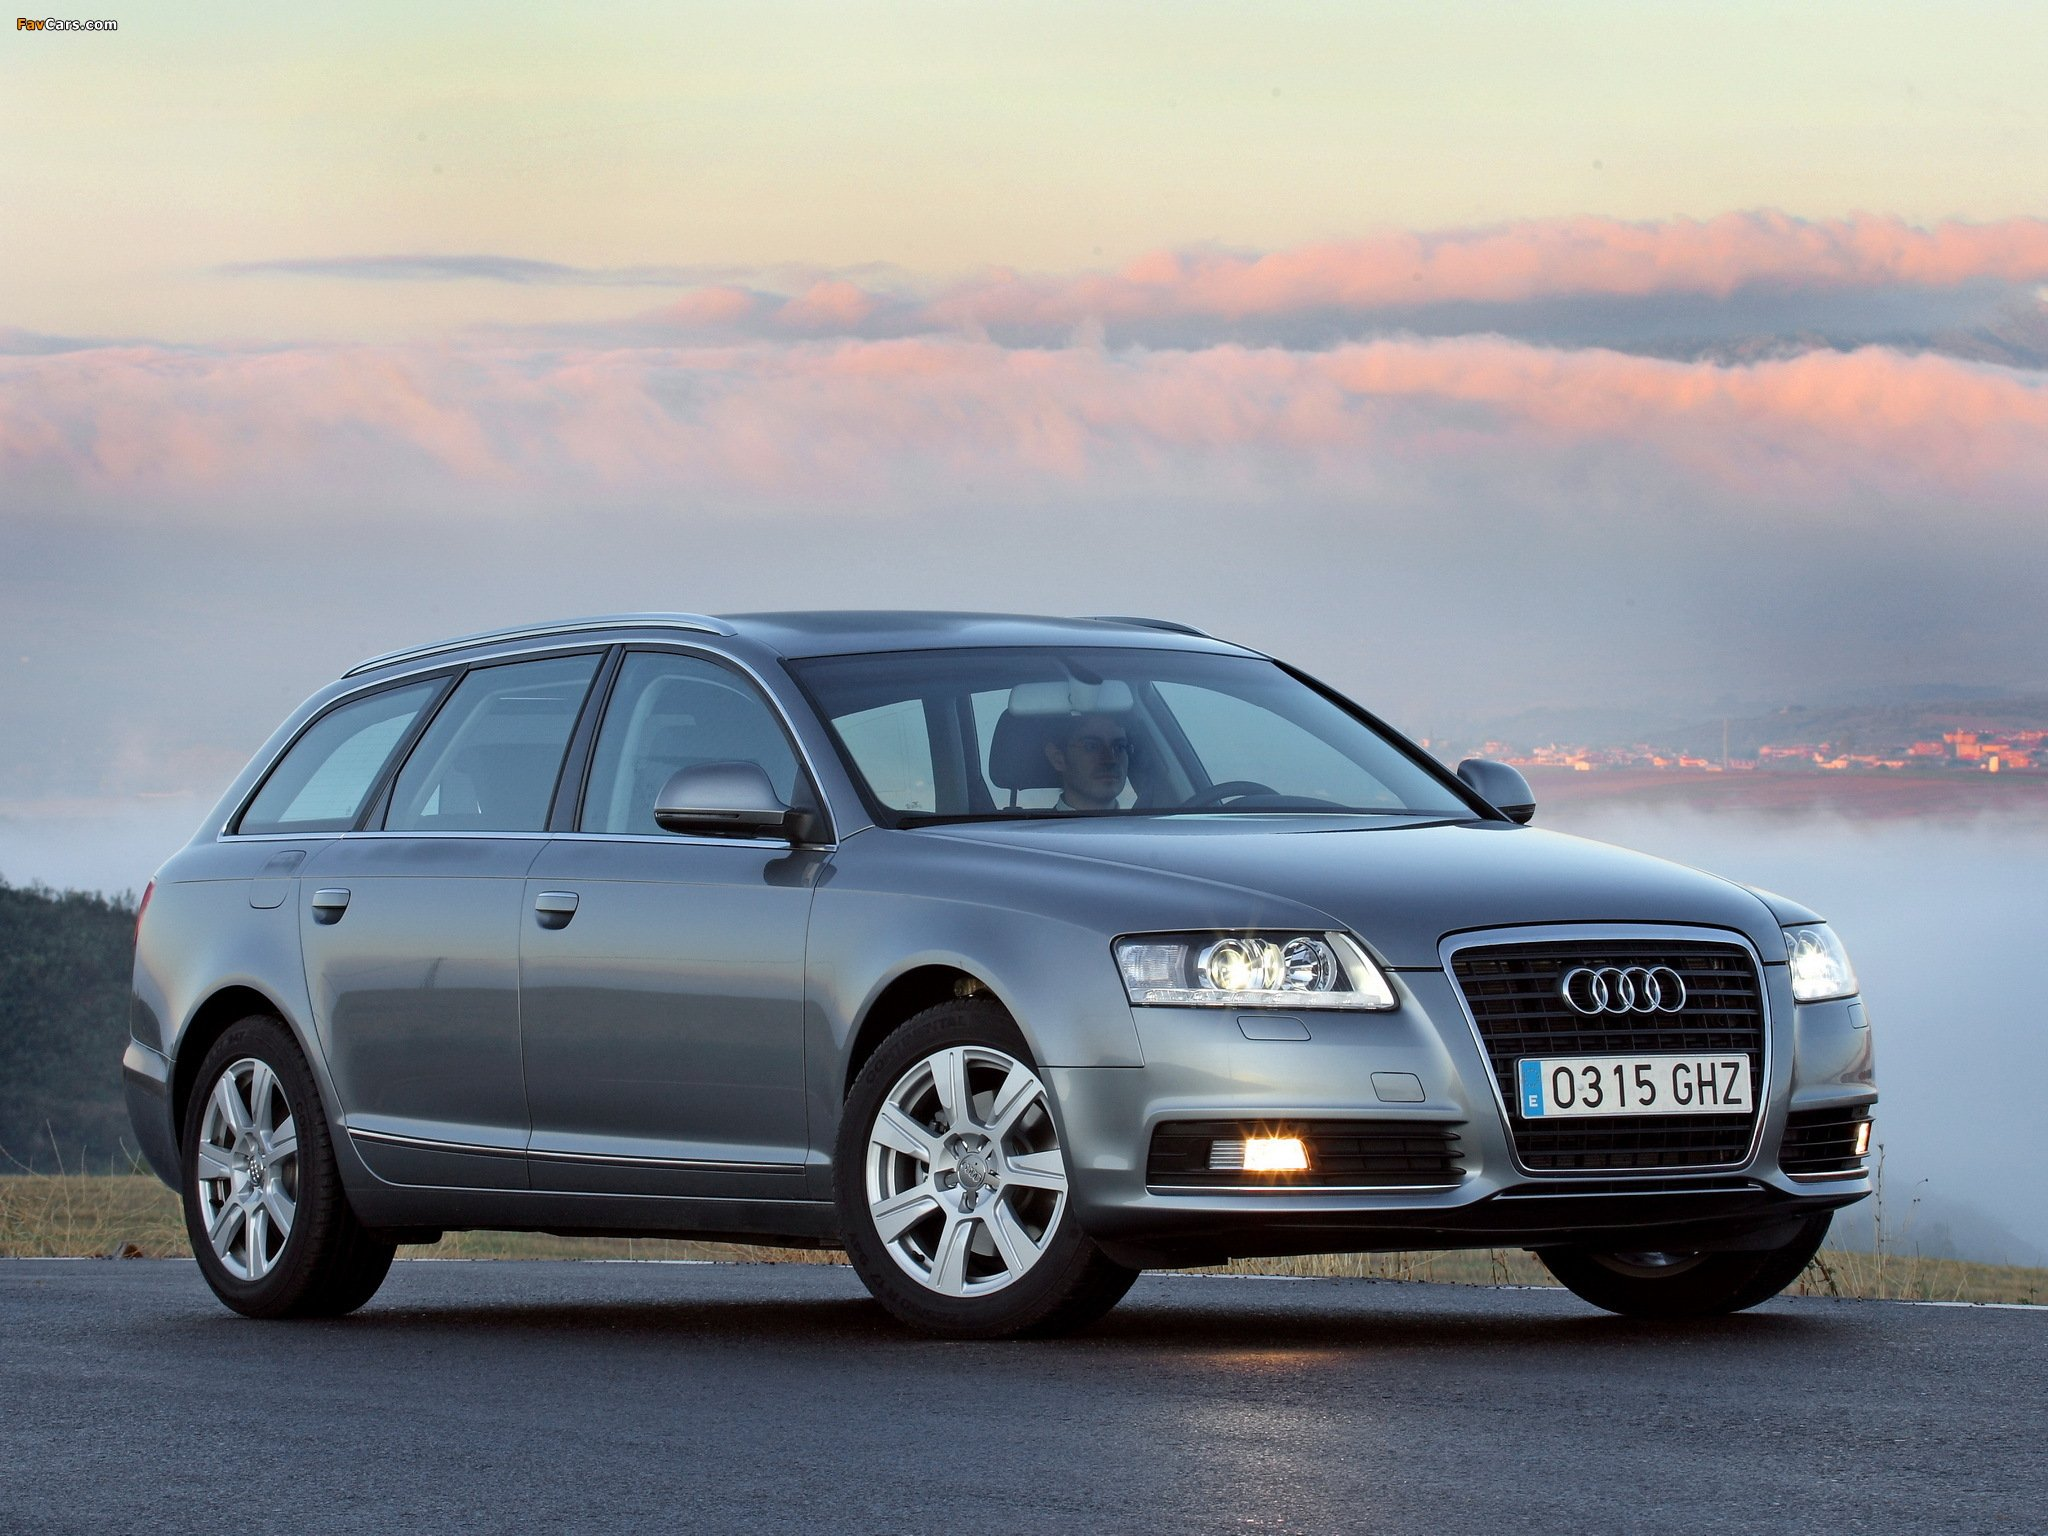 2008 audi a6 avant 4f c6 pictures information and specs auto. Black Bedroom Furniture Sets. Home Design Ideas